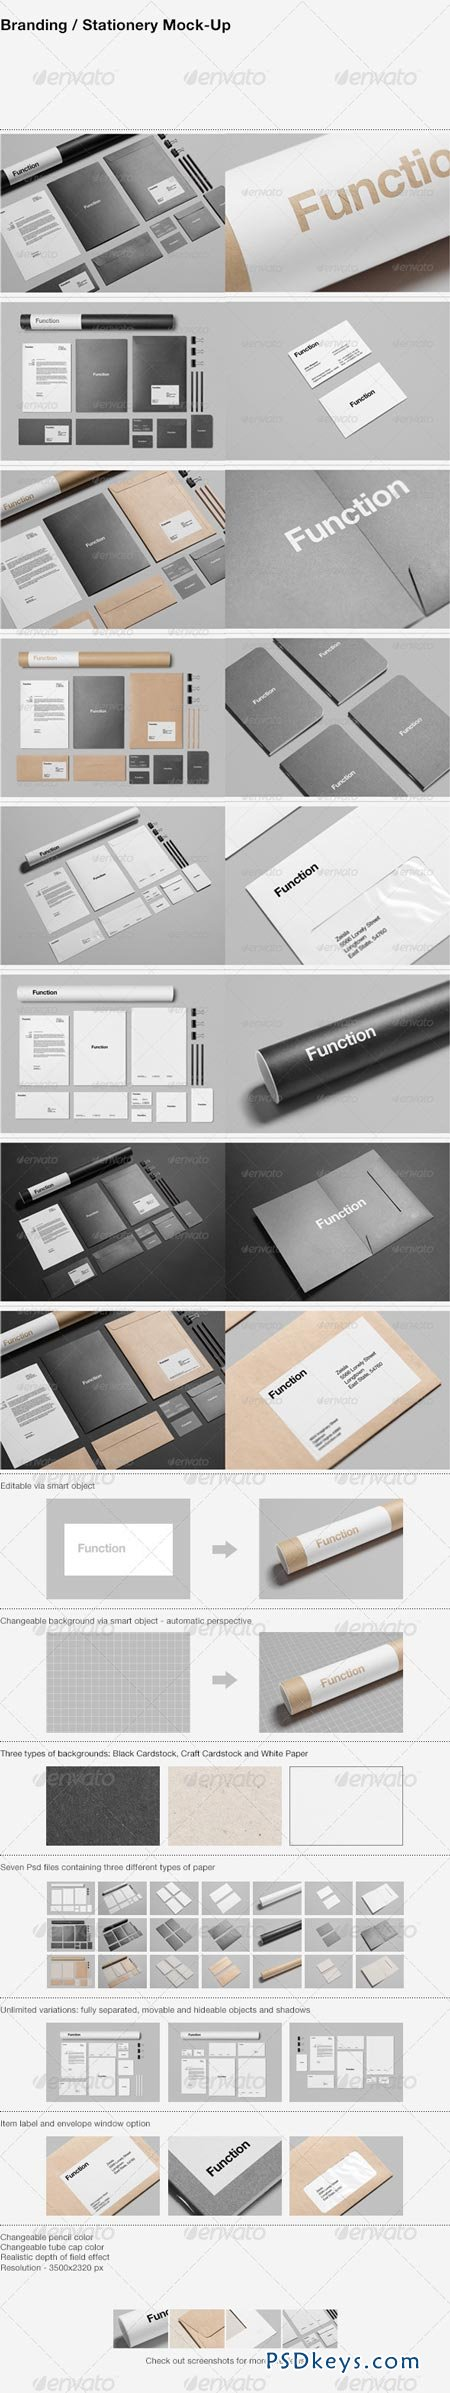 Branding Stationery Mock-Up 5598480